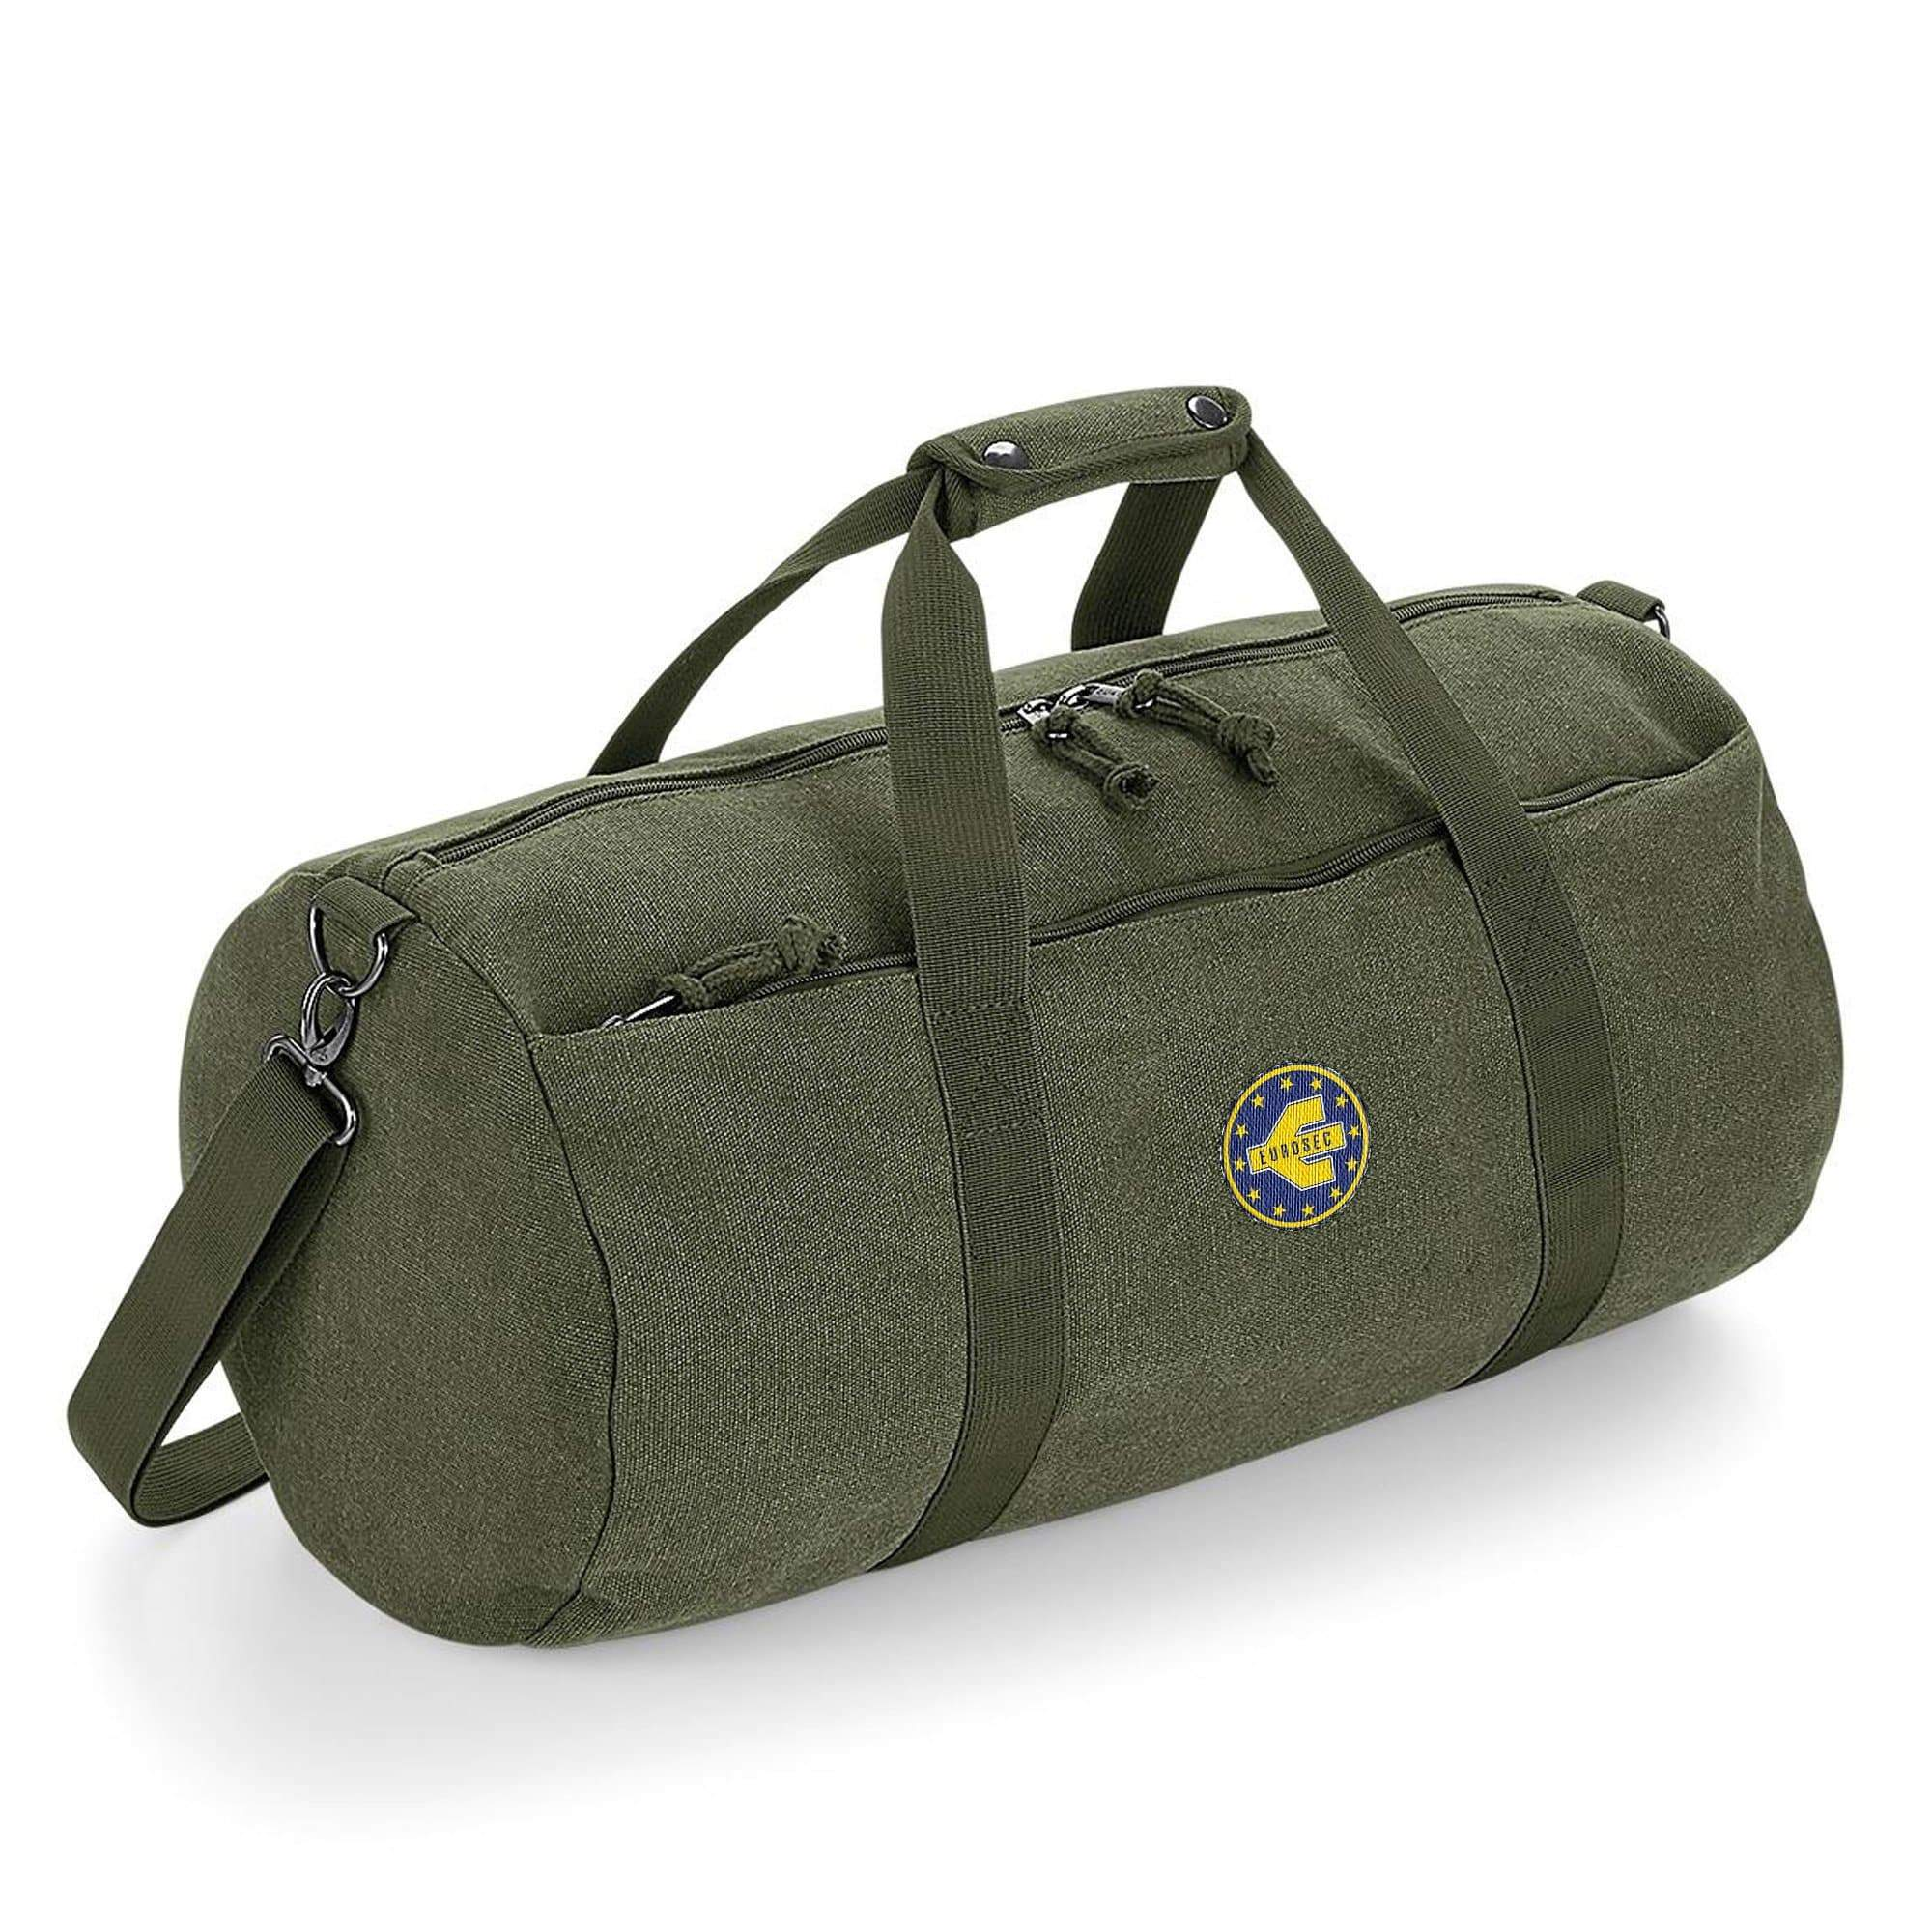 Eurosec Logo Barrel Bag - The Gerry Anderson Store